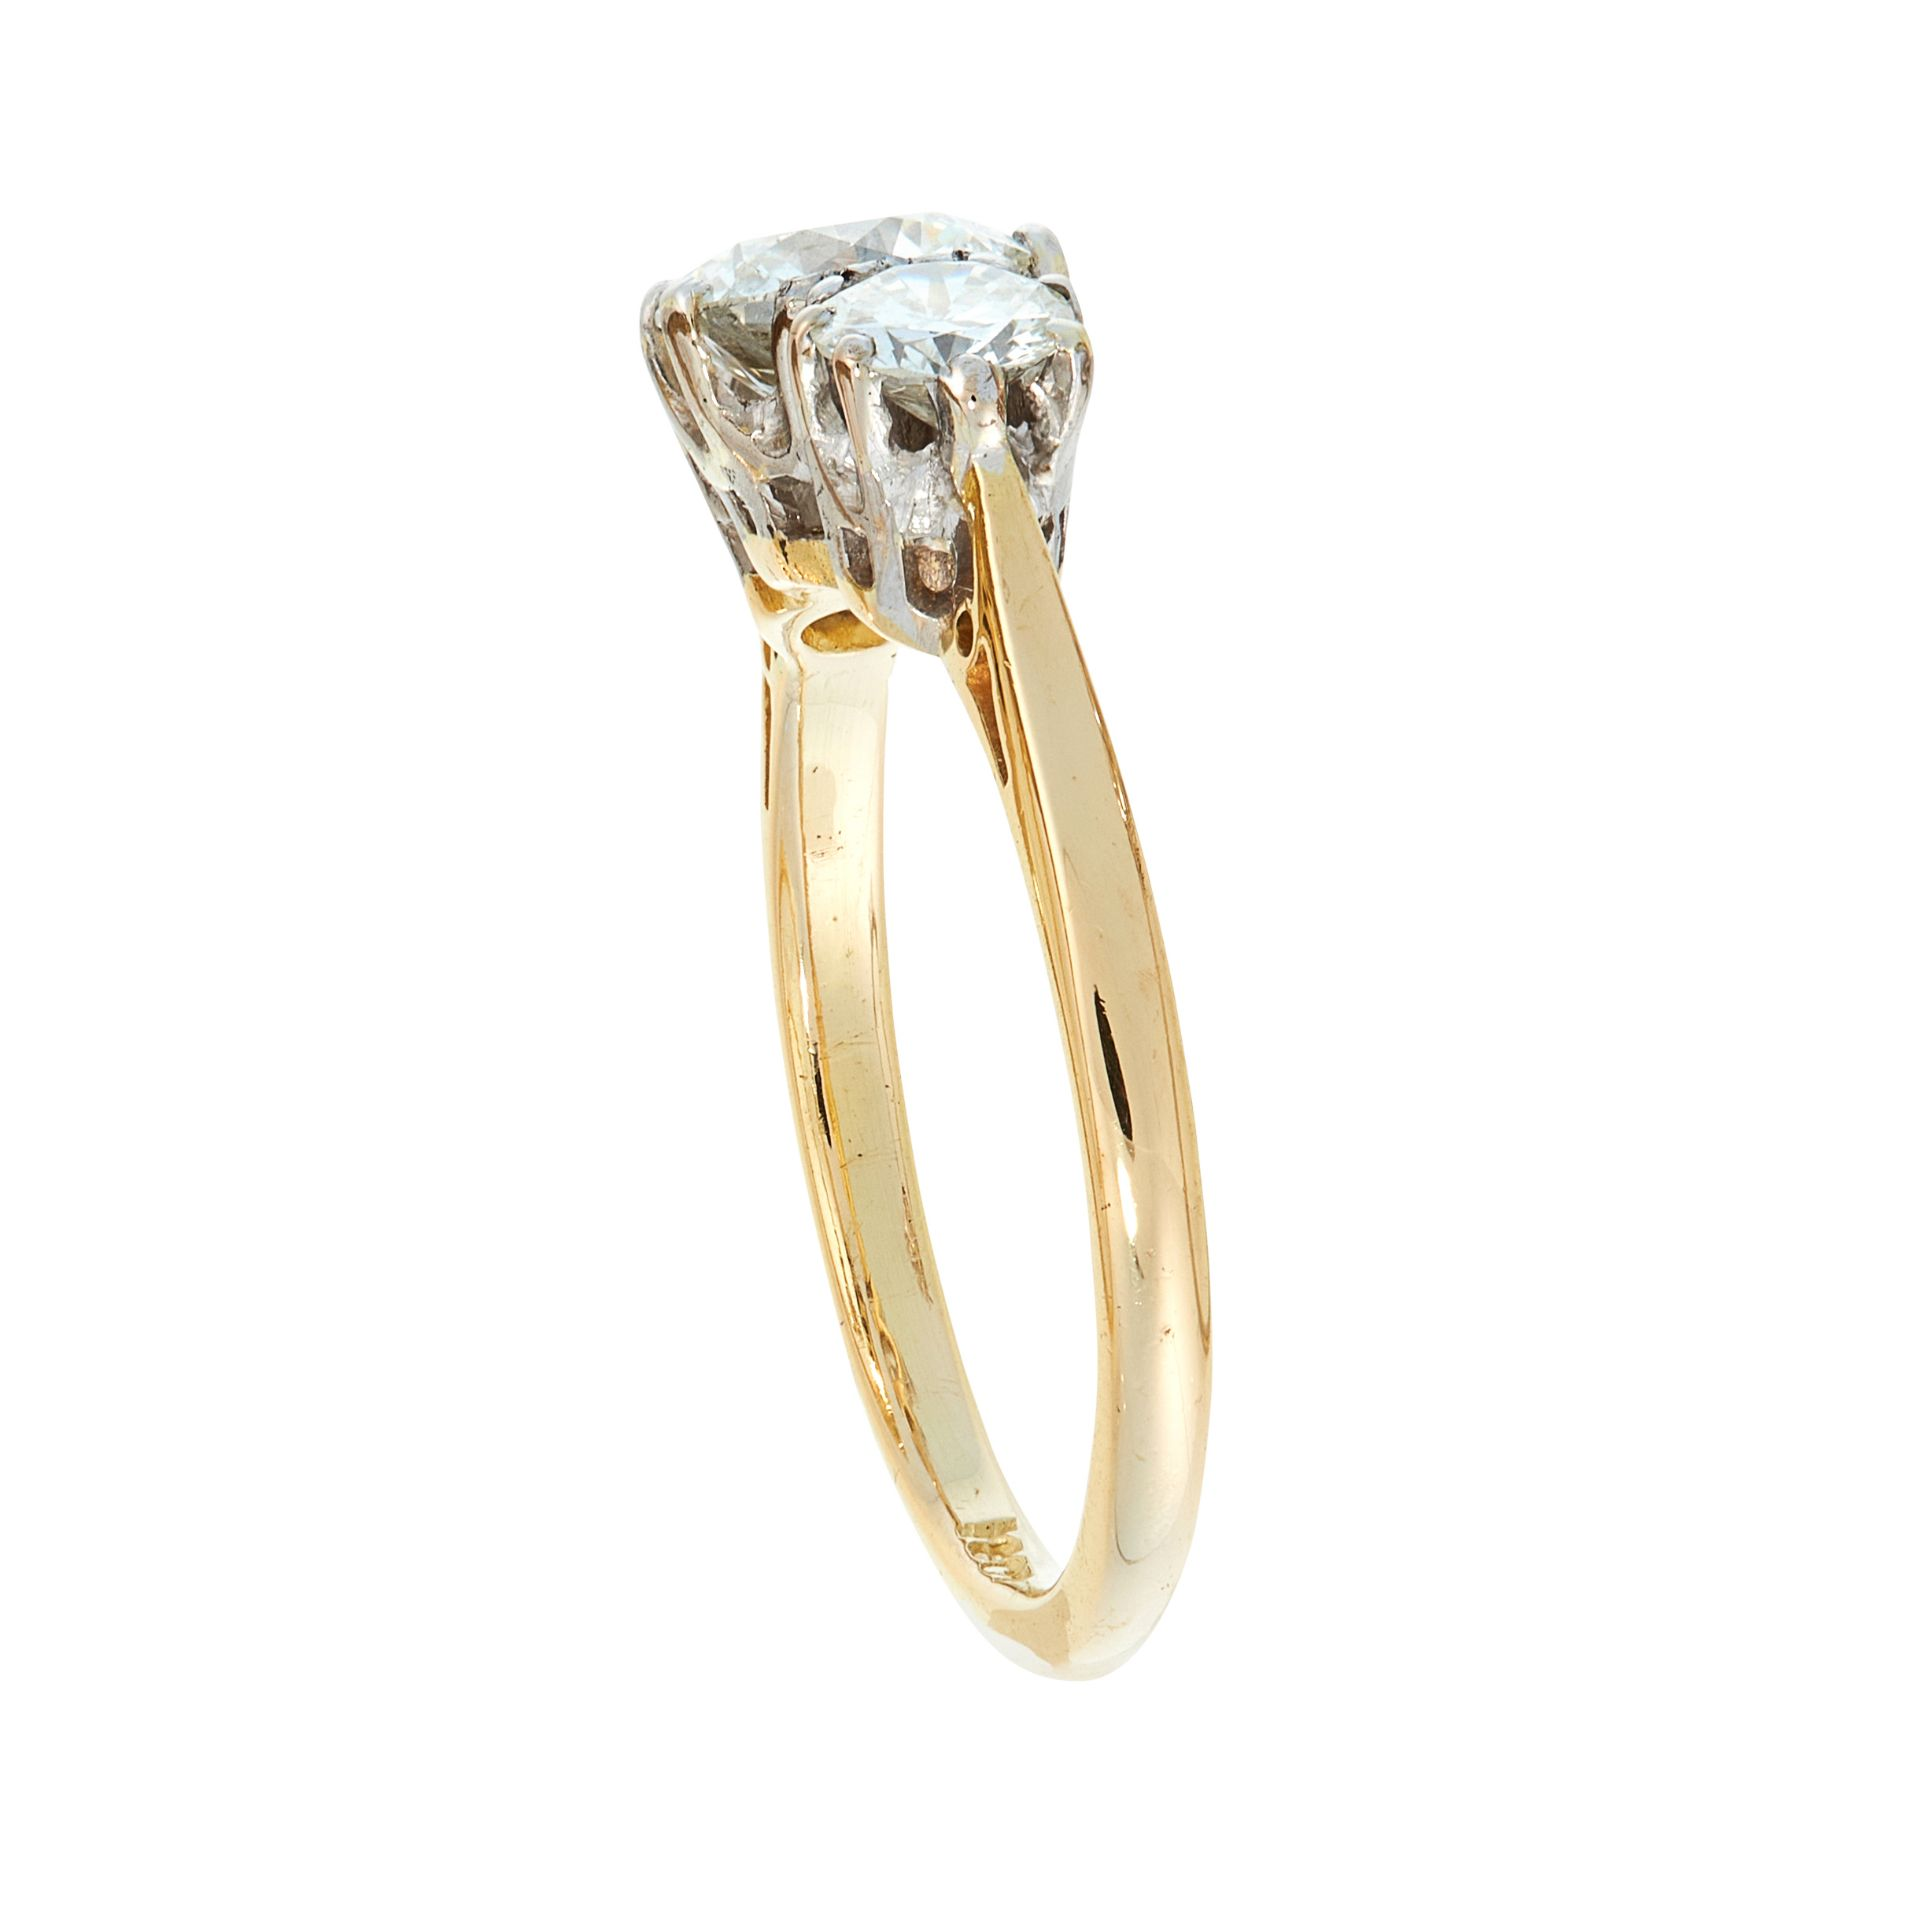 A DIAMOND THREE STONE RING in 18ct yellow gold, set with a principal round cut diamond of 1.03 - Image 2 of 2